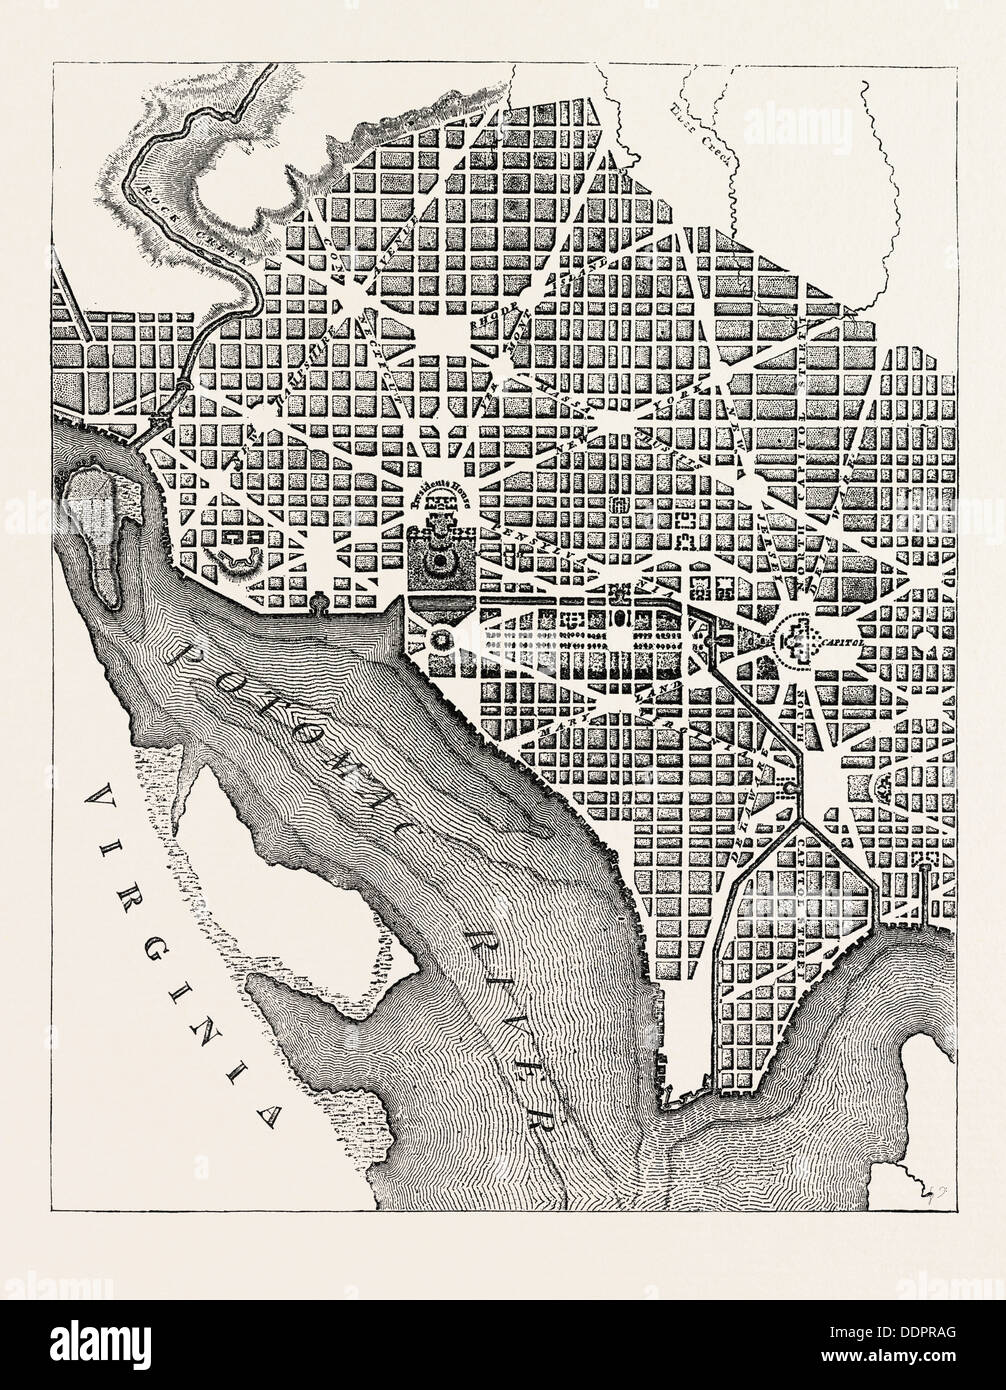 PLAN OF THE CITY OF WASHINGTON, AS ORIGINALLY LAID OUT (From a Plate published in 1793.), UNITED STATES OF AMERICA, US, USA - Stock Image